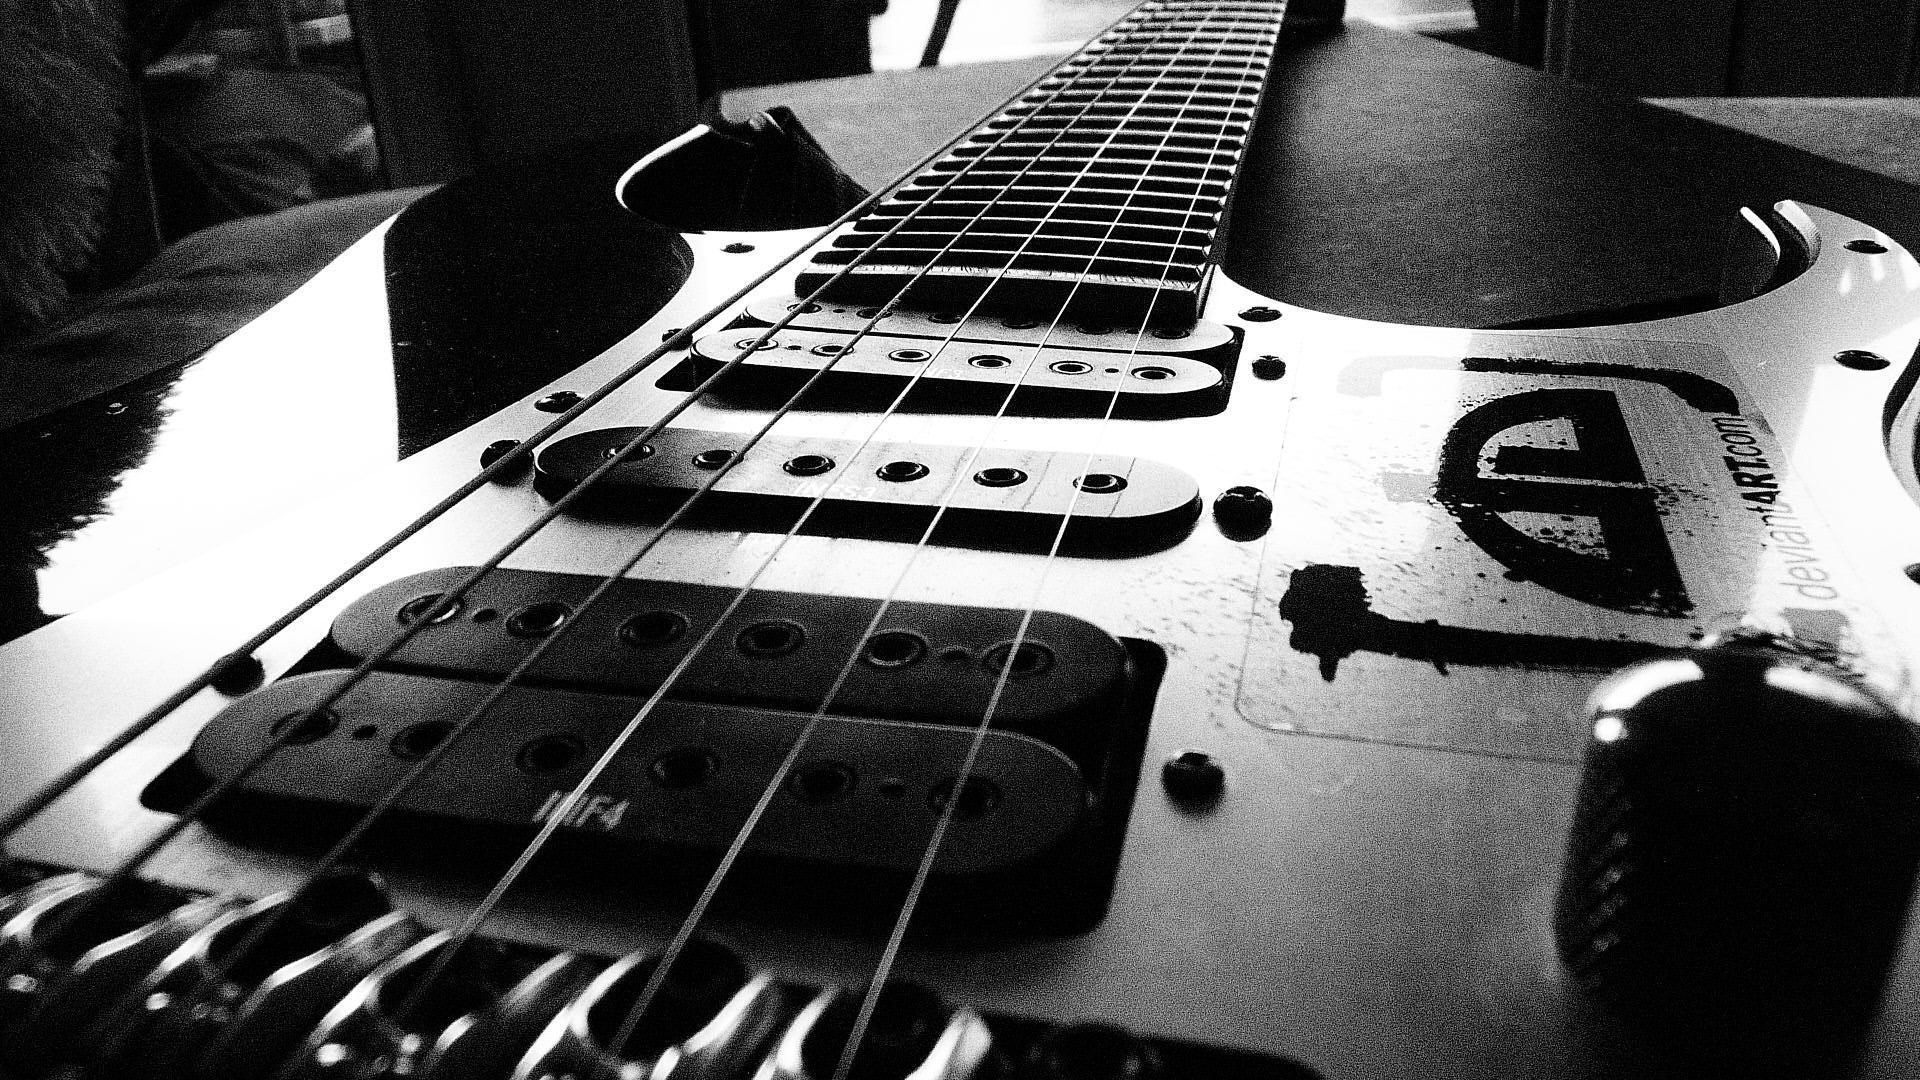 cool music wallpapers backgrounds guitar electric hd background desktop ibanez nice